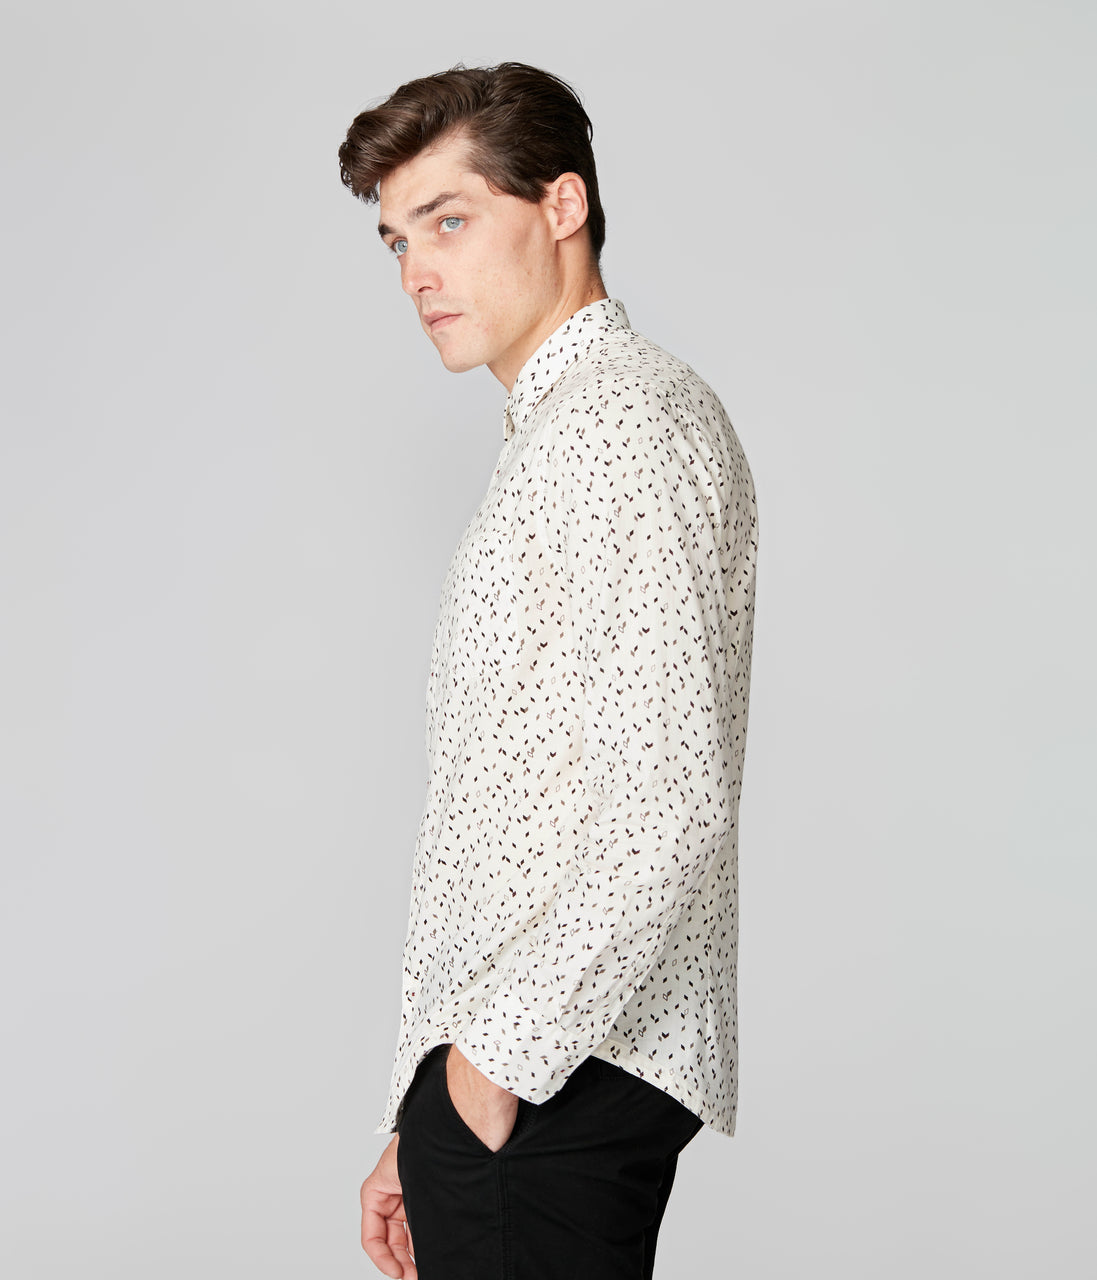 On-Point Print Shirt - Cream Falling Diamond - Good Man Brand - On-Point Print Shirt - Cream Falling Diamond